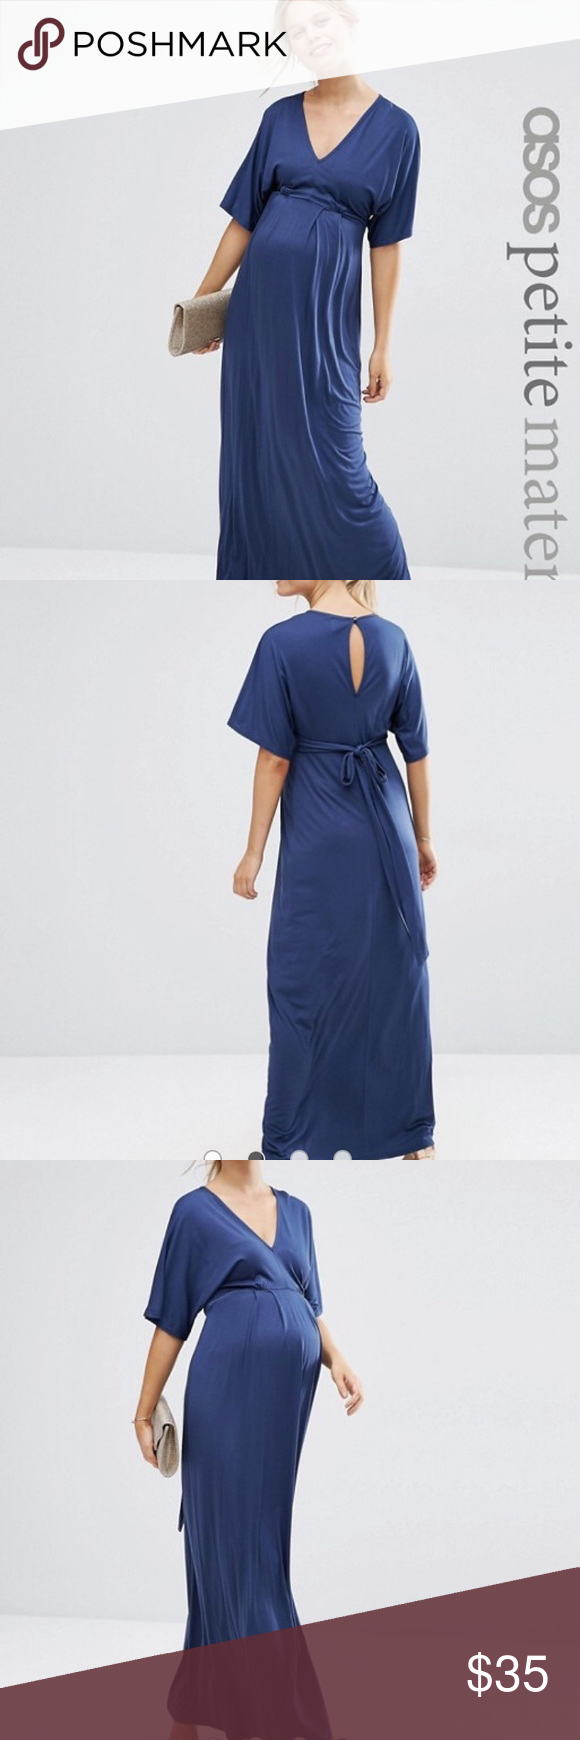 ASOS maternity petite kimono maxi dress ASOS maternity petite kimono maxi dress - navy, size 2. I wore it once for a few hours at an event. Really comfy and flattering. ASOS Maternity Dresses Maxi